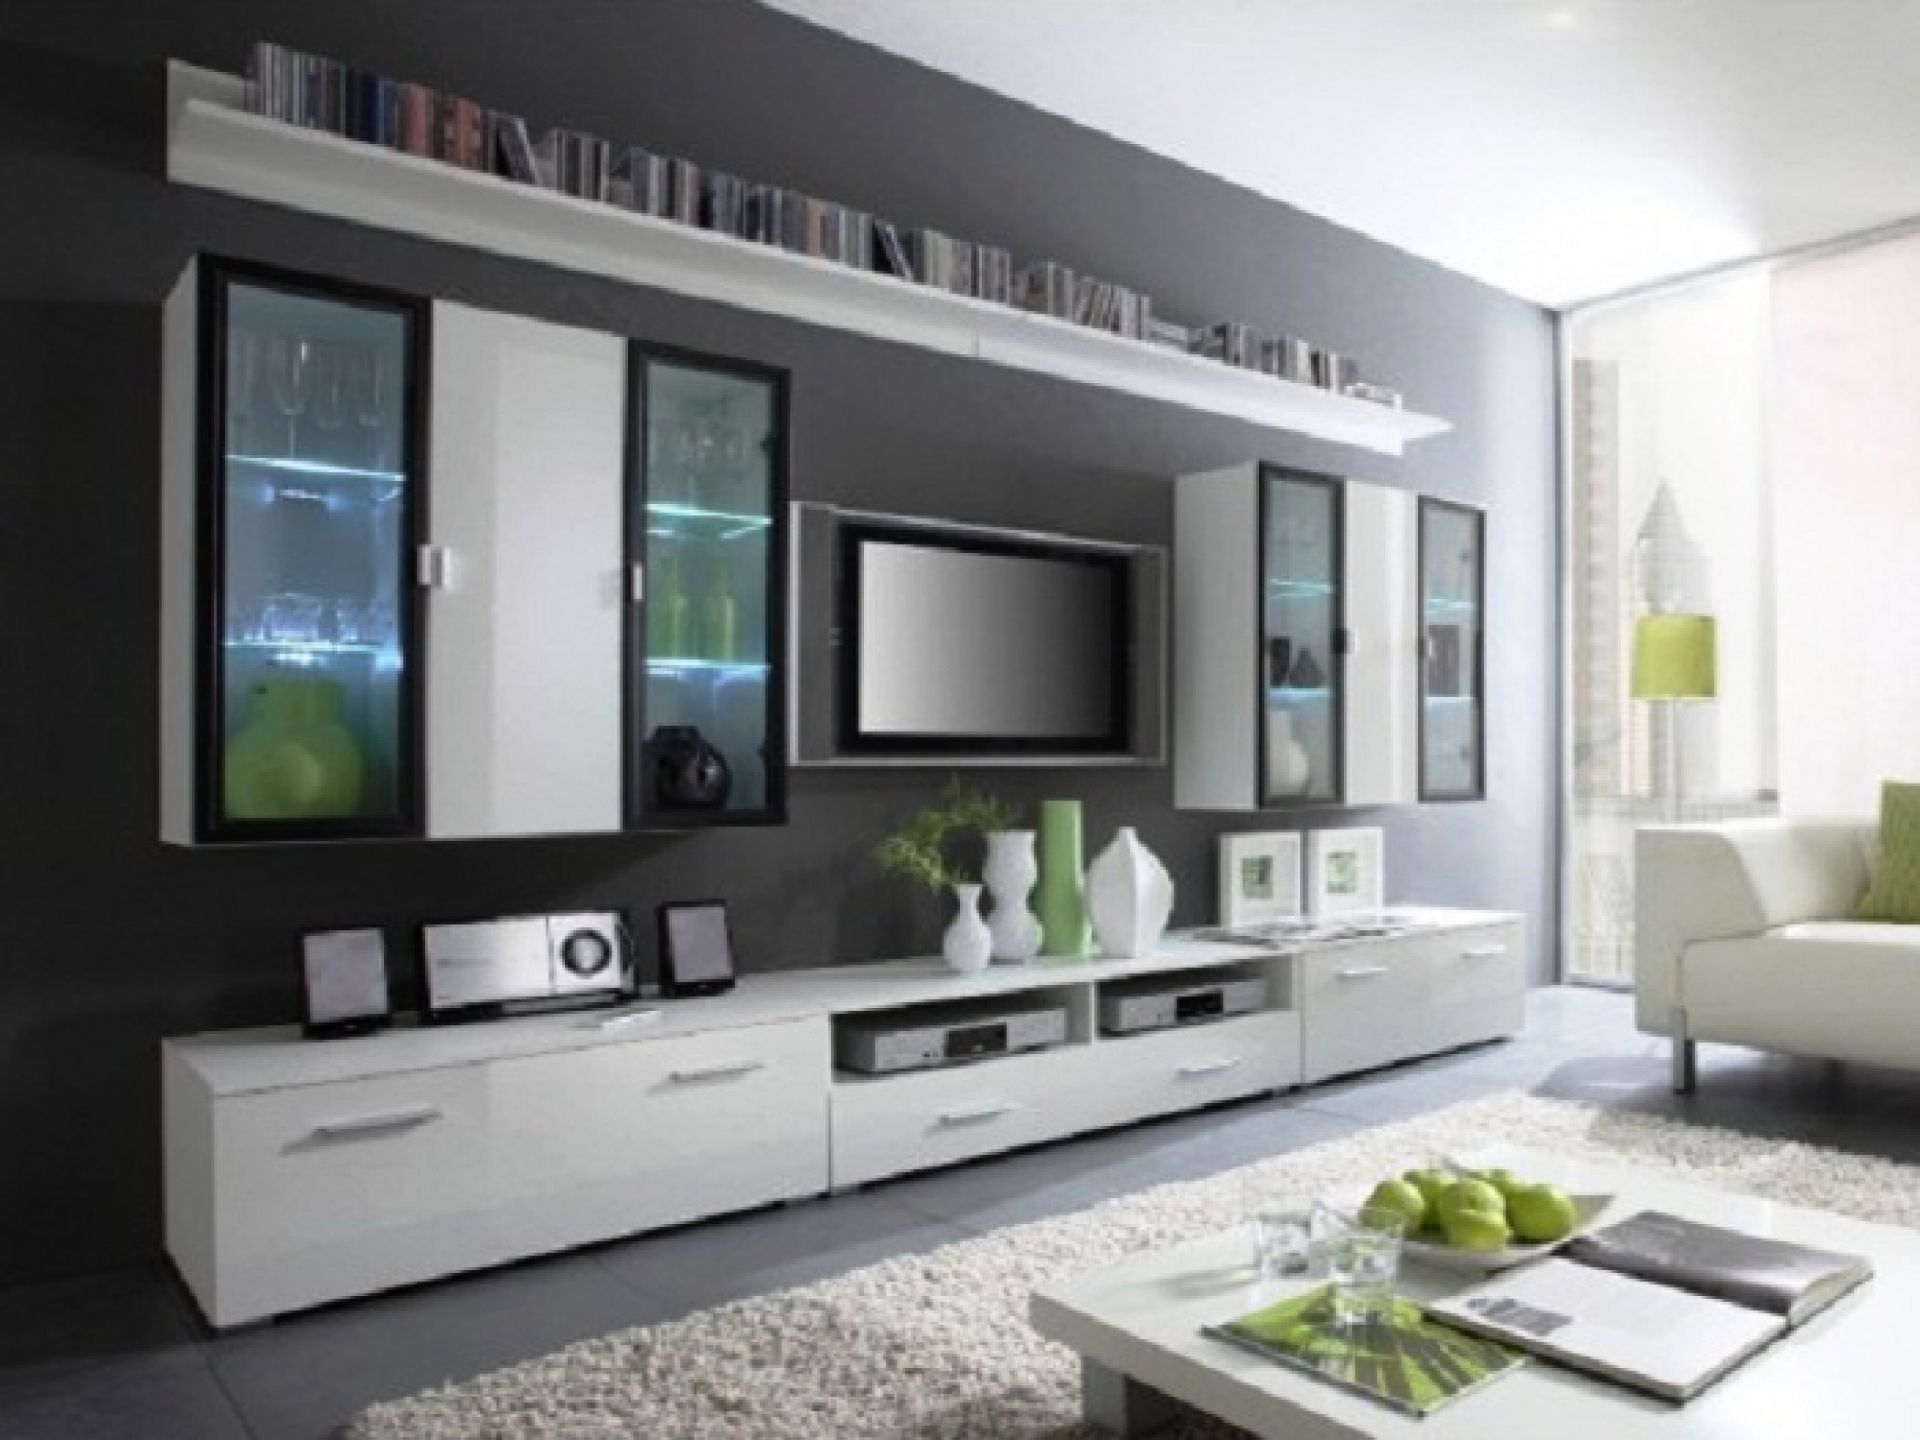 Television Wall Mount Rooms That Make Us Keep Coming Back Image 10 ...